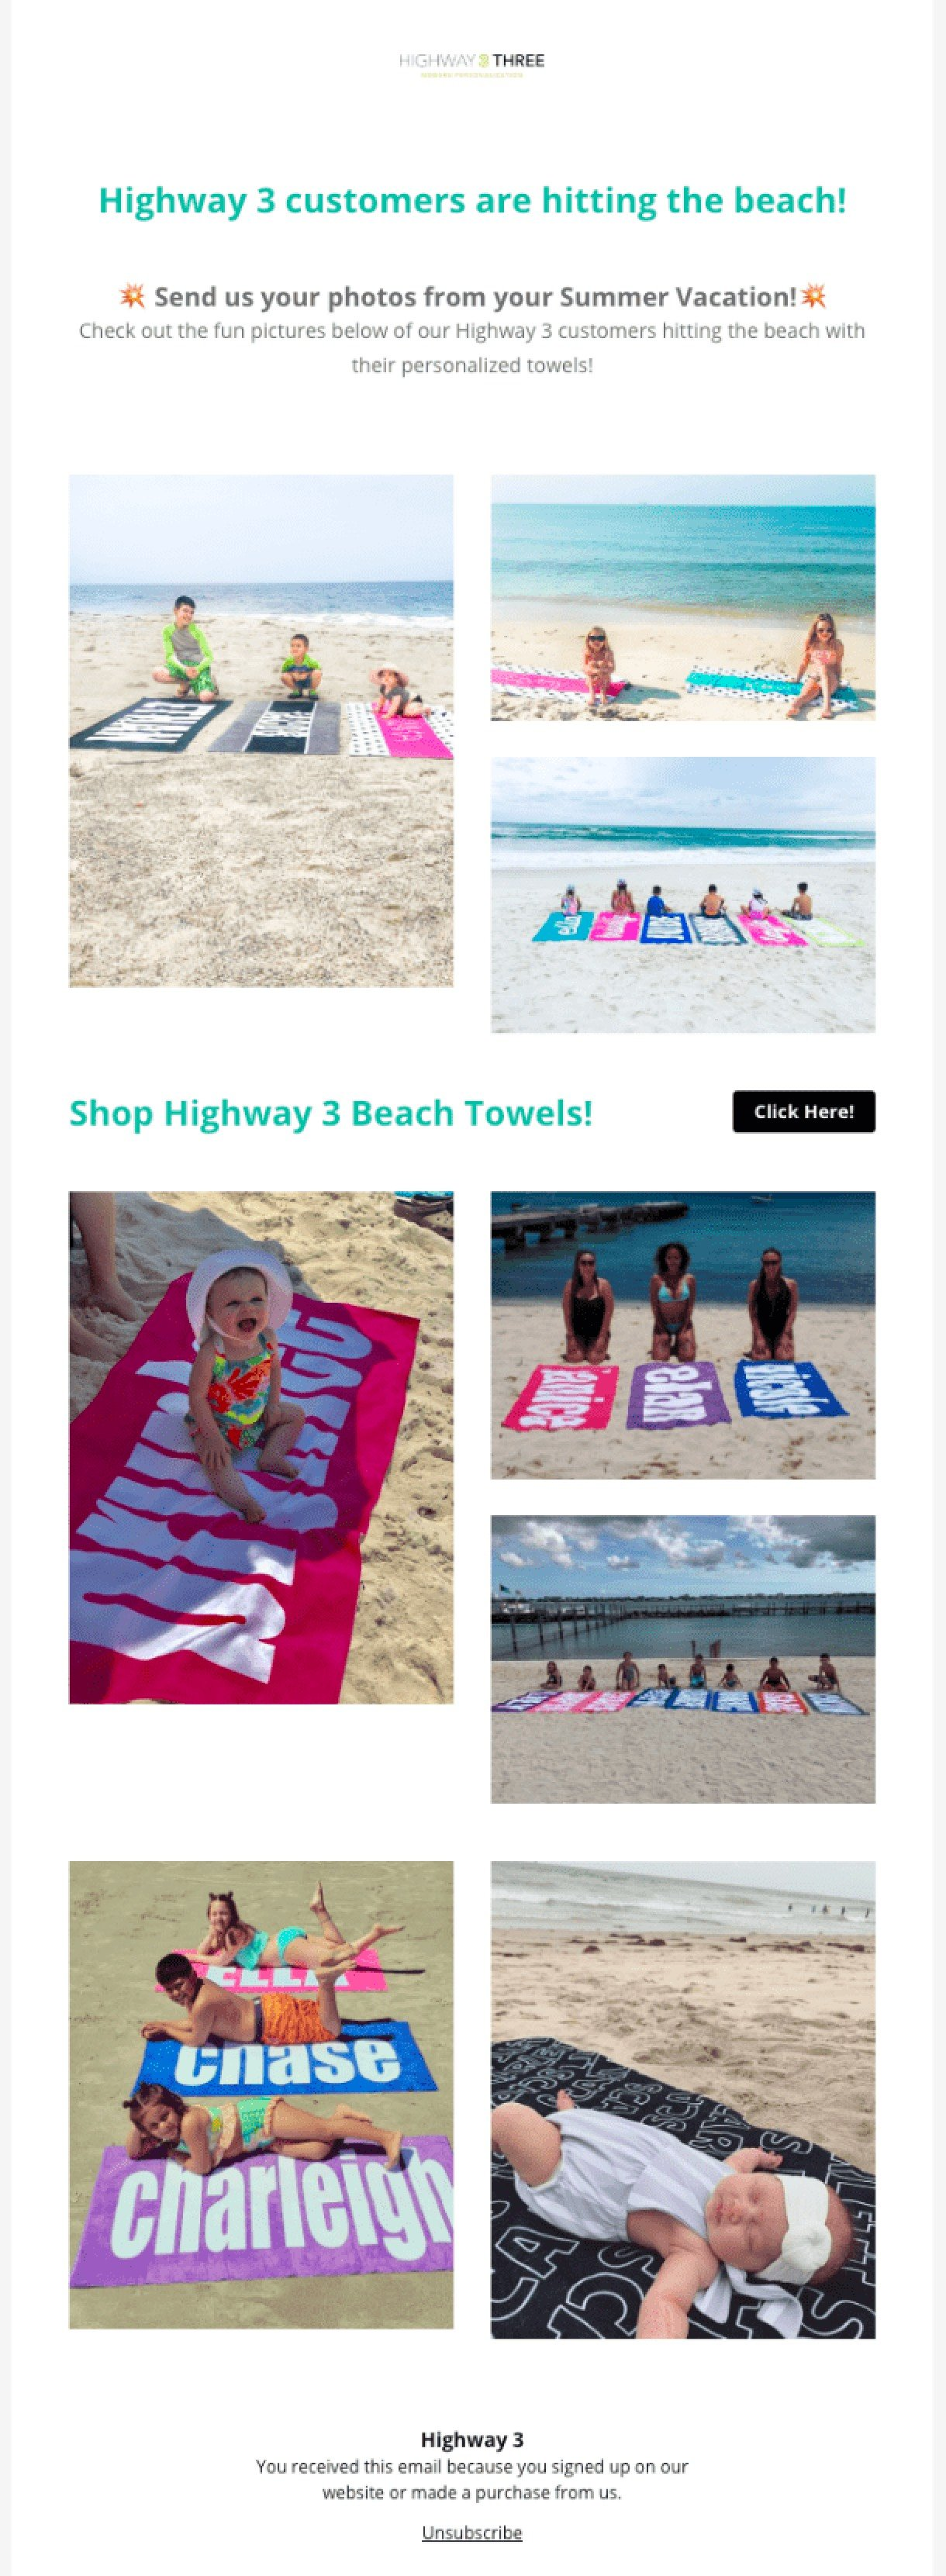 Highway 3 newsletter with user generated content